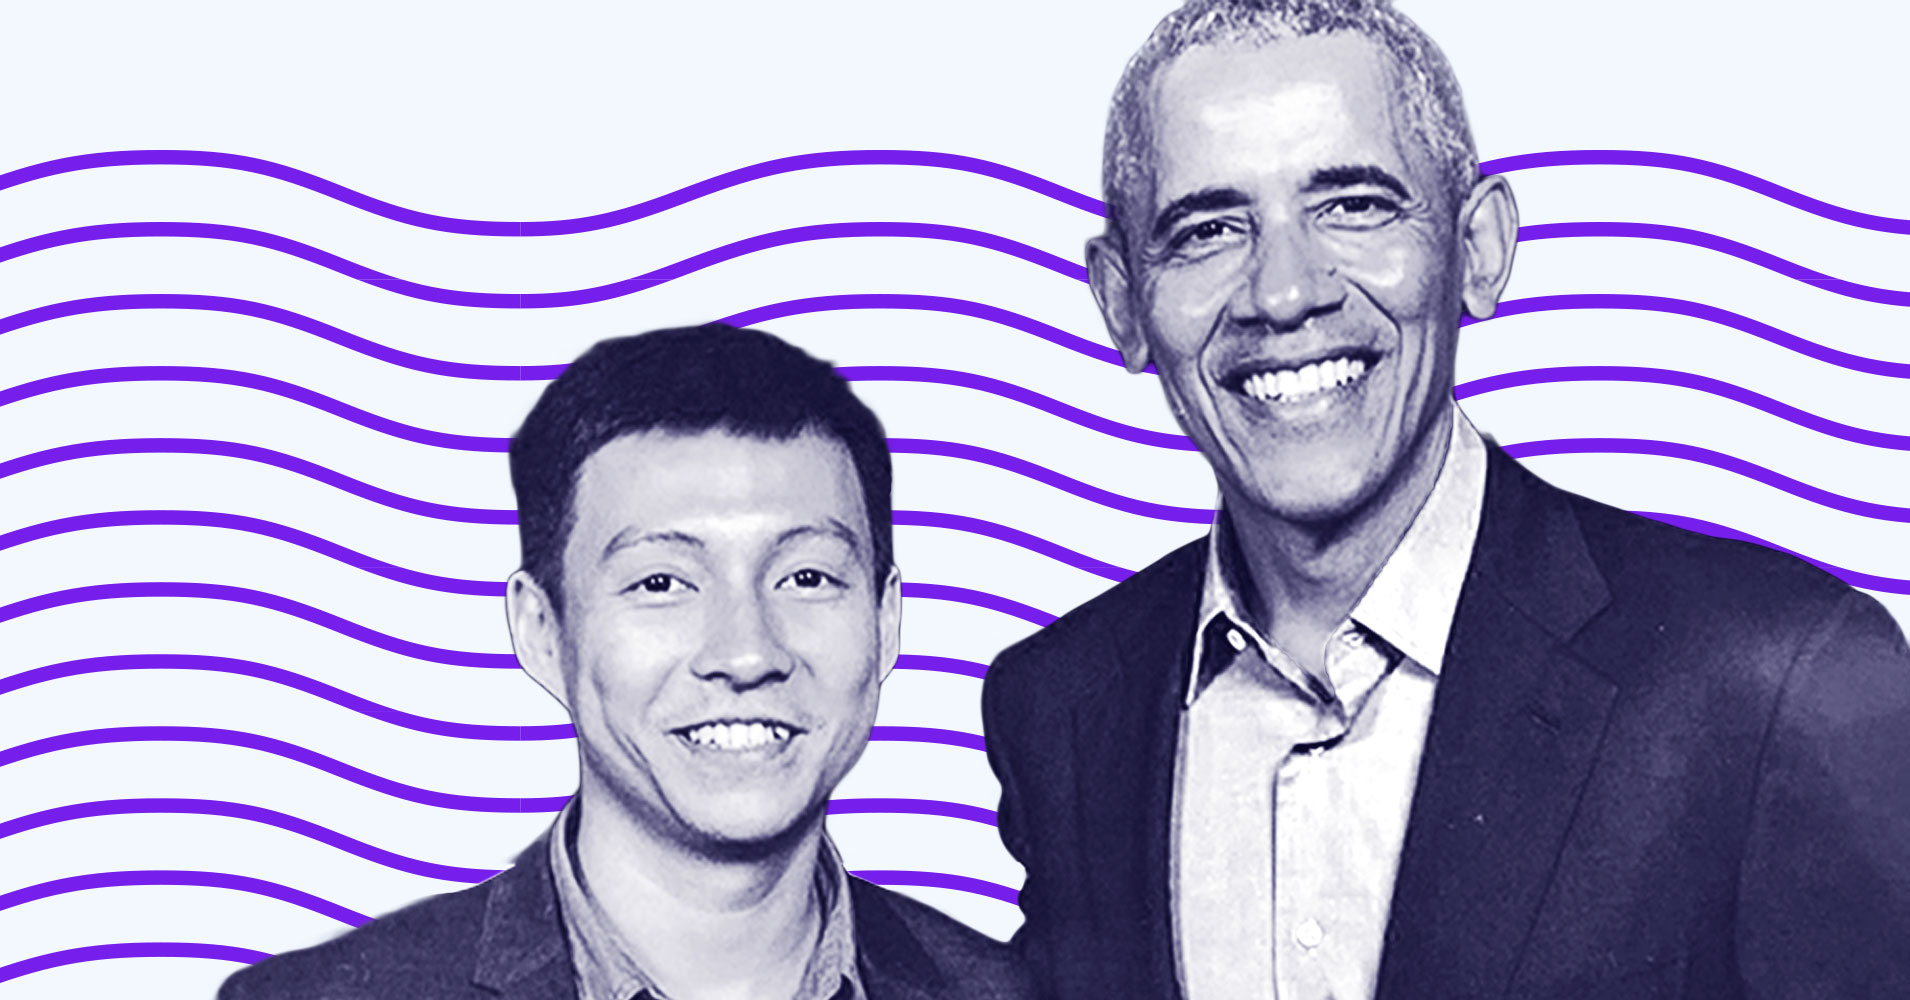 Dreamship in Conversation with Barack Obama